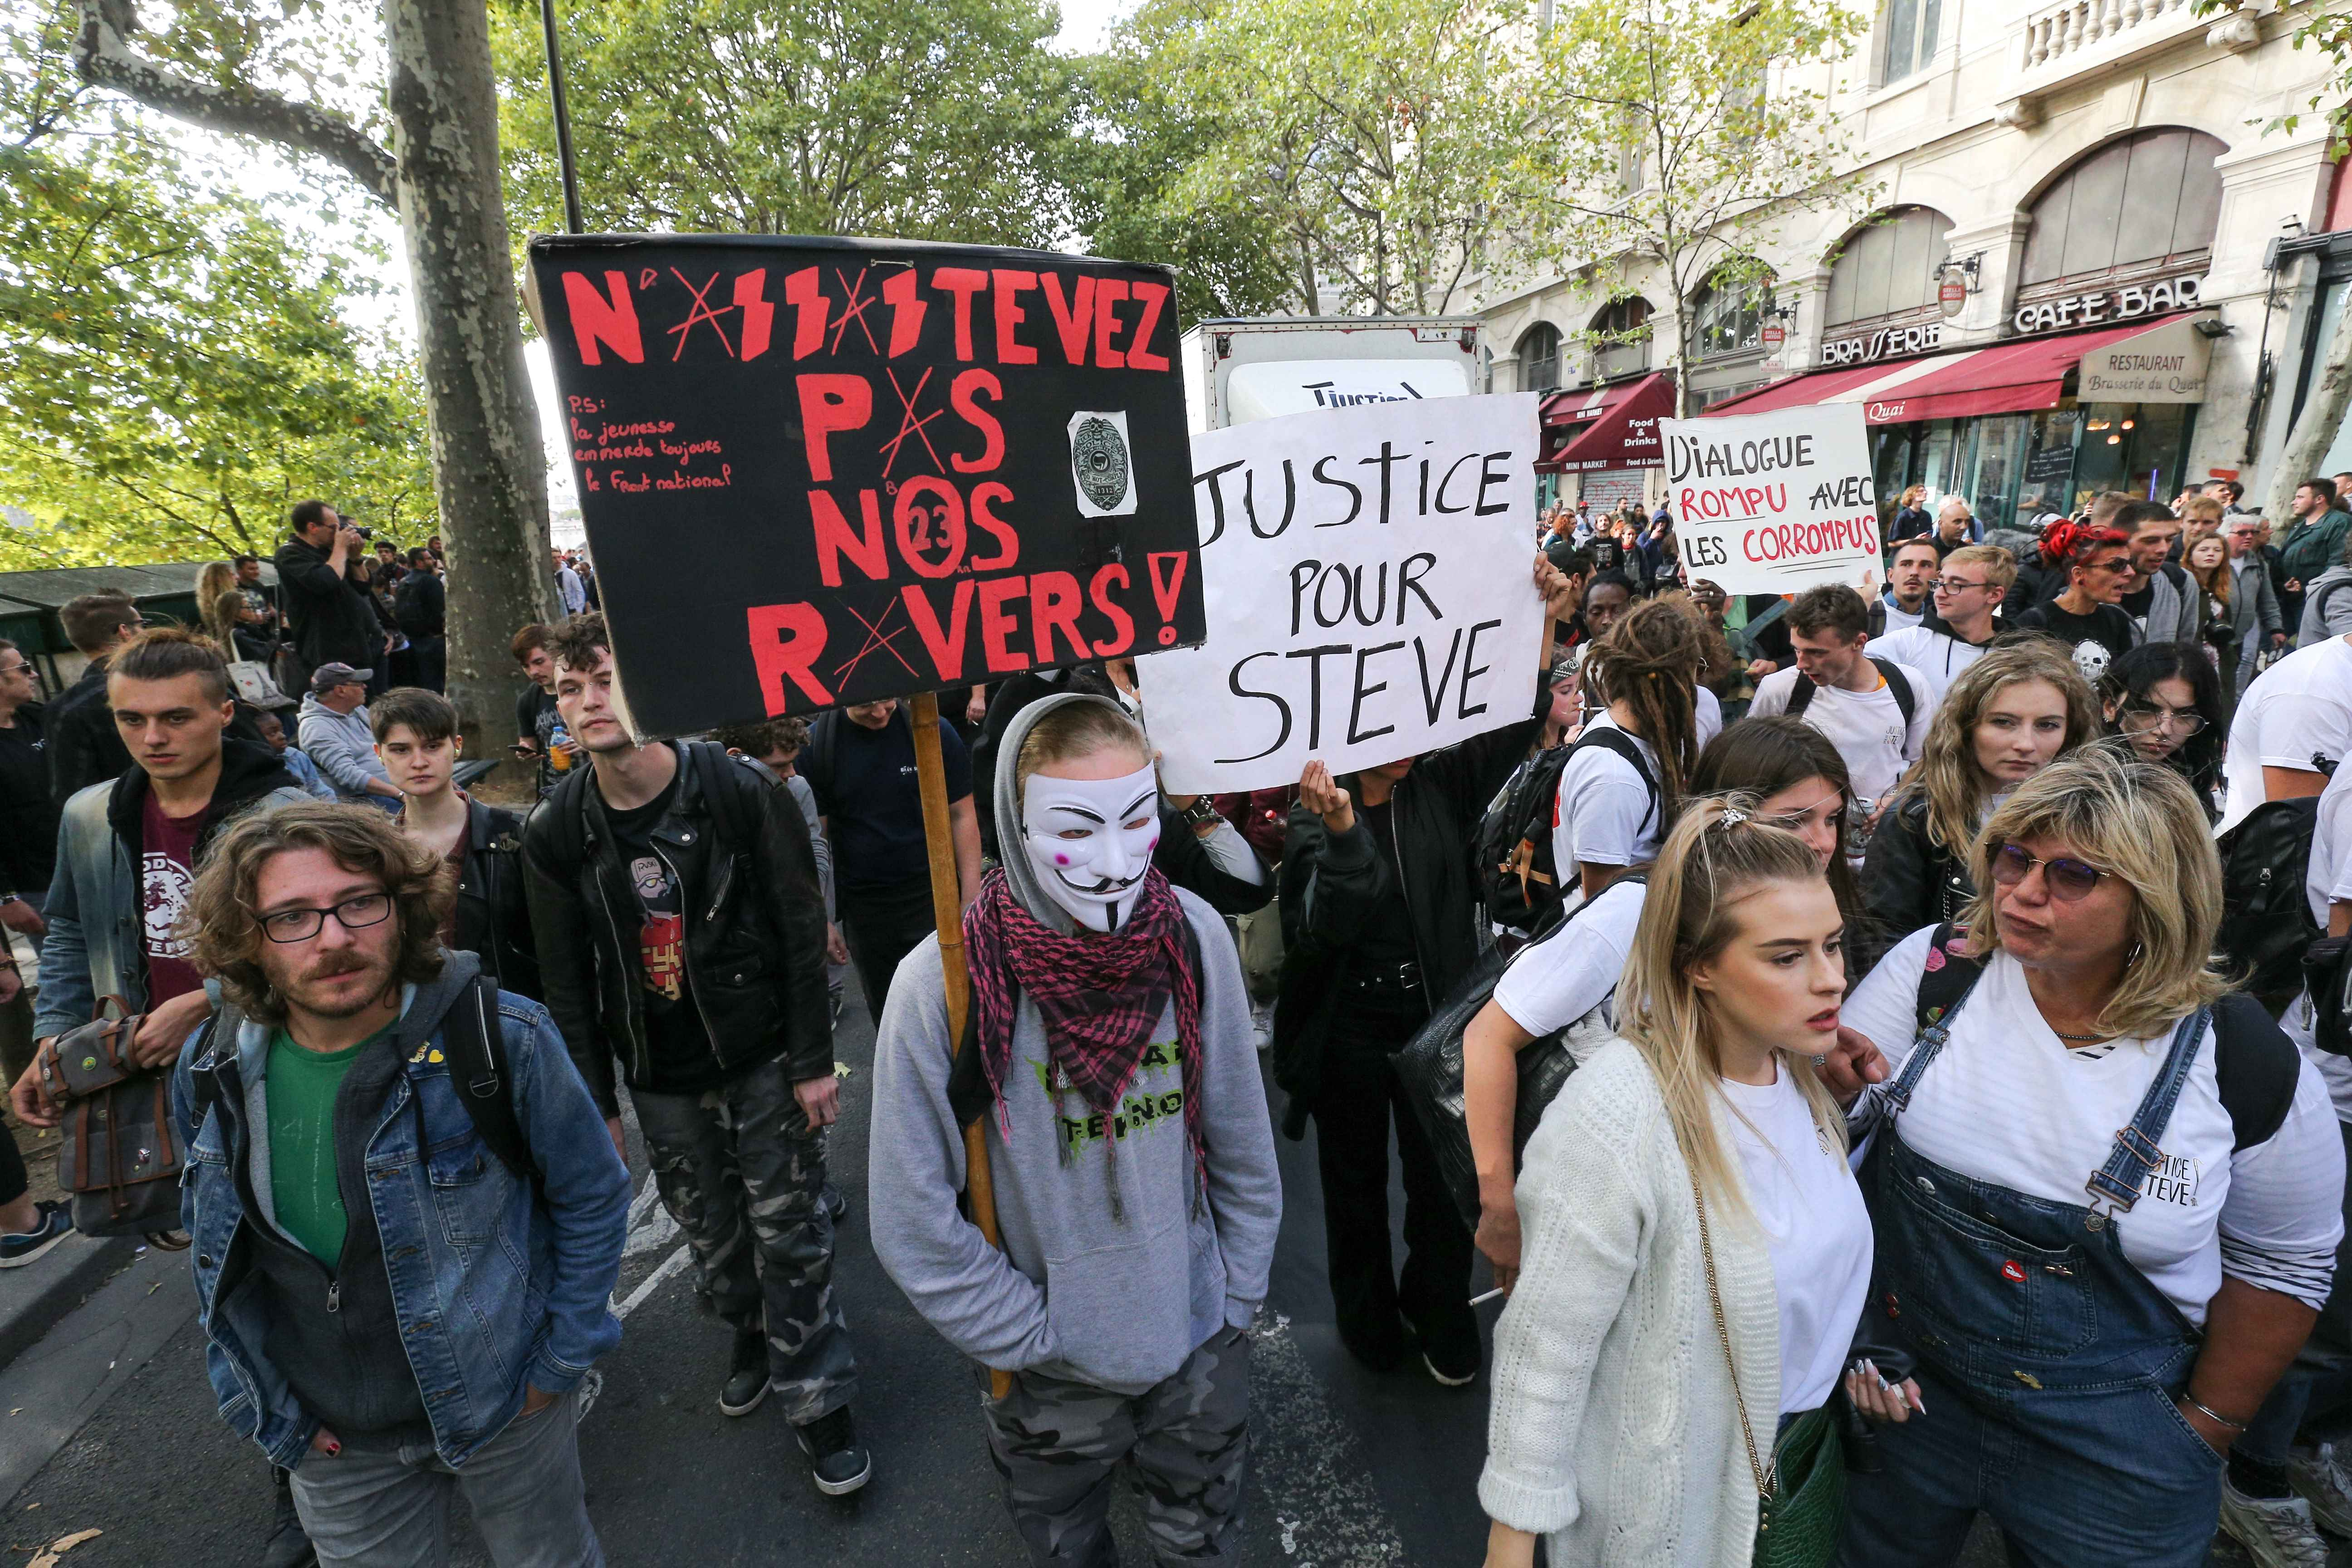 People take part in the 21st annual Techno Parade in Paris, on September 28, 2019. They carry a banner  reading : « Justice for Steve ». This year parade was dedicated to the memory of Steve Canico, a young techno fan who went missing on June 21, 2019 at